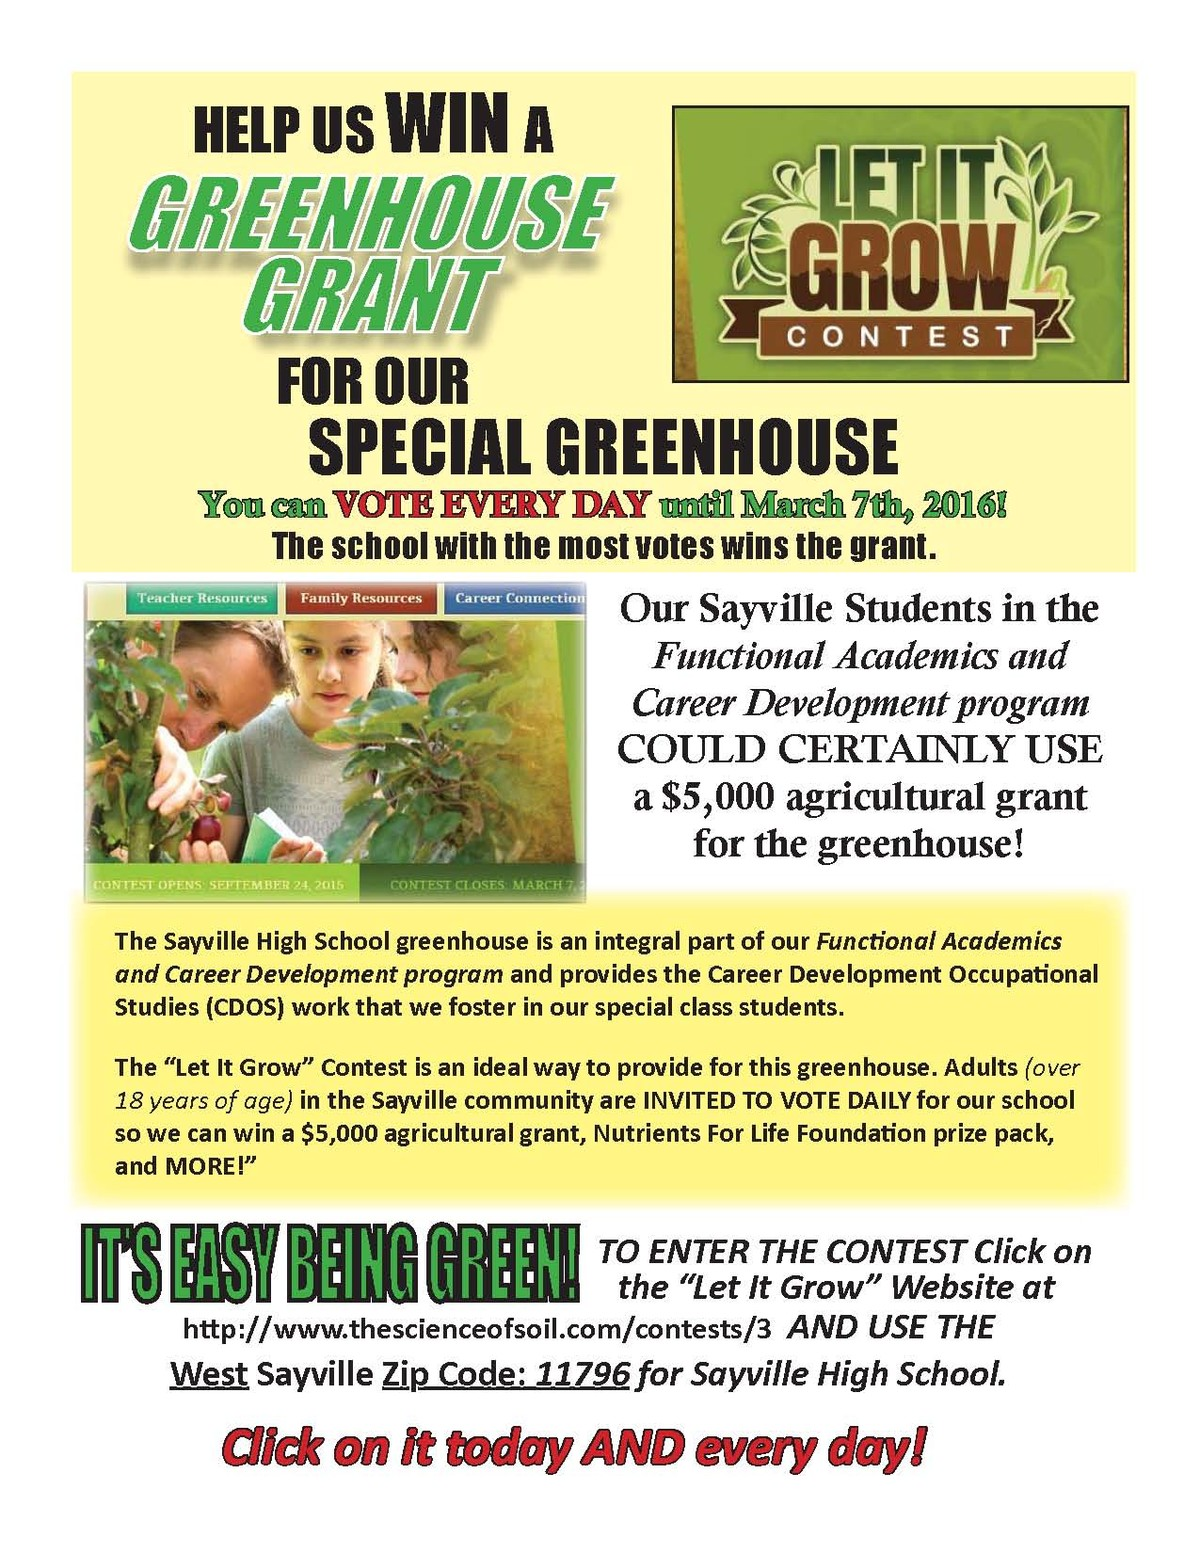 lg_GREENHOUSE CONTEST FLYER.jpg